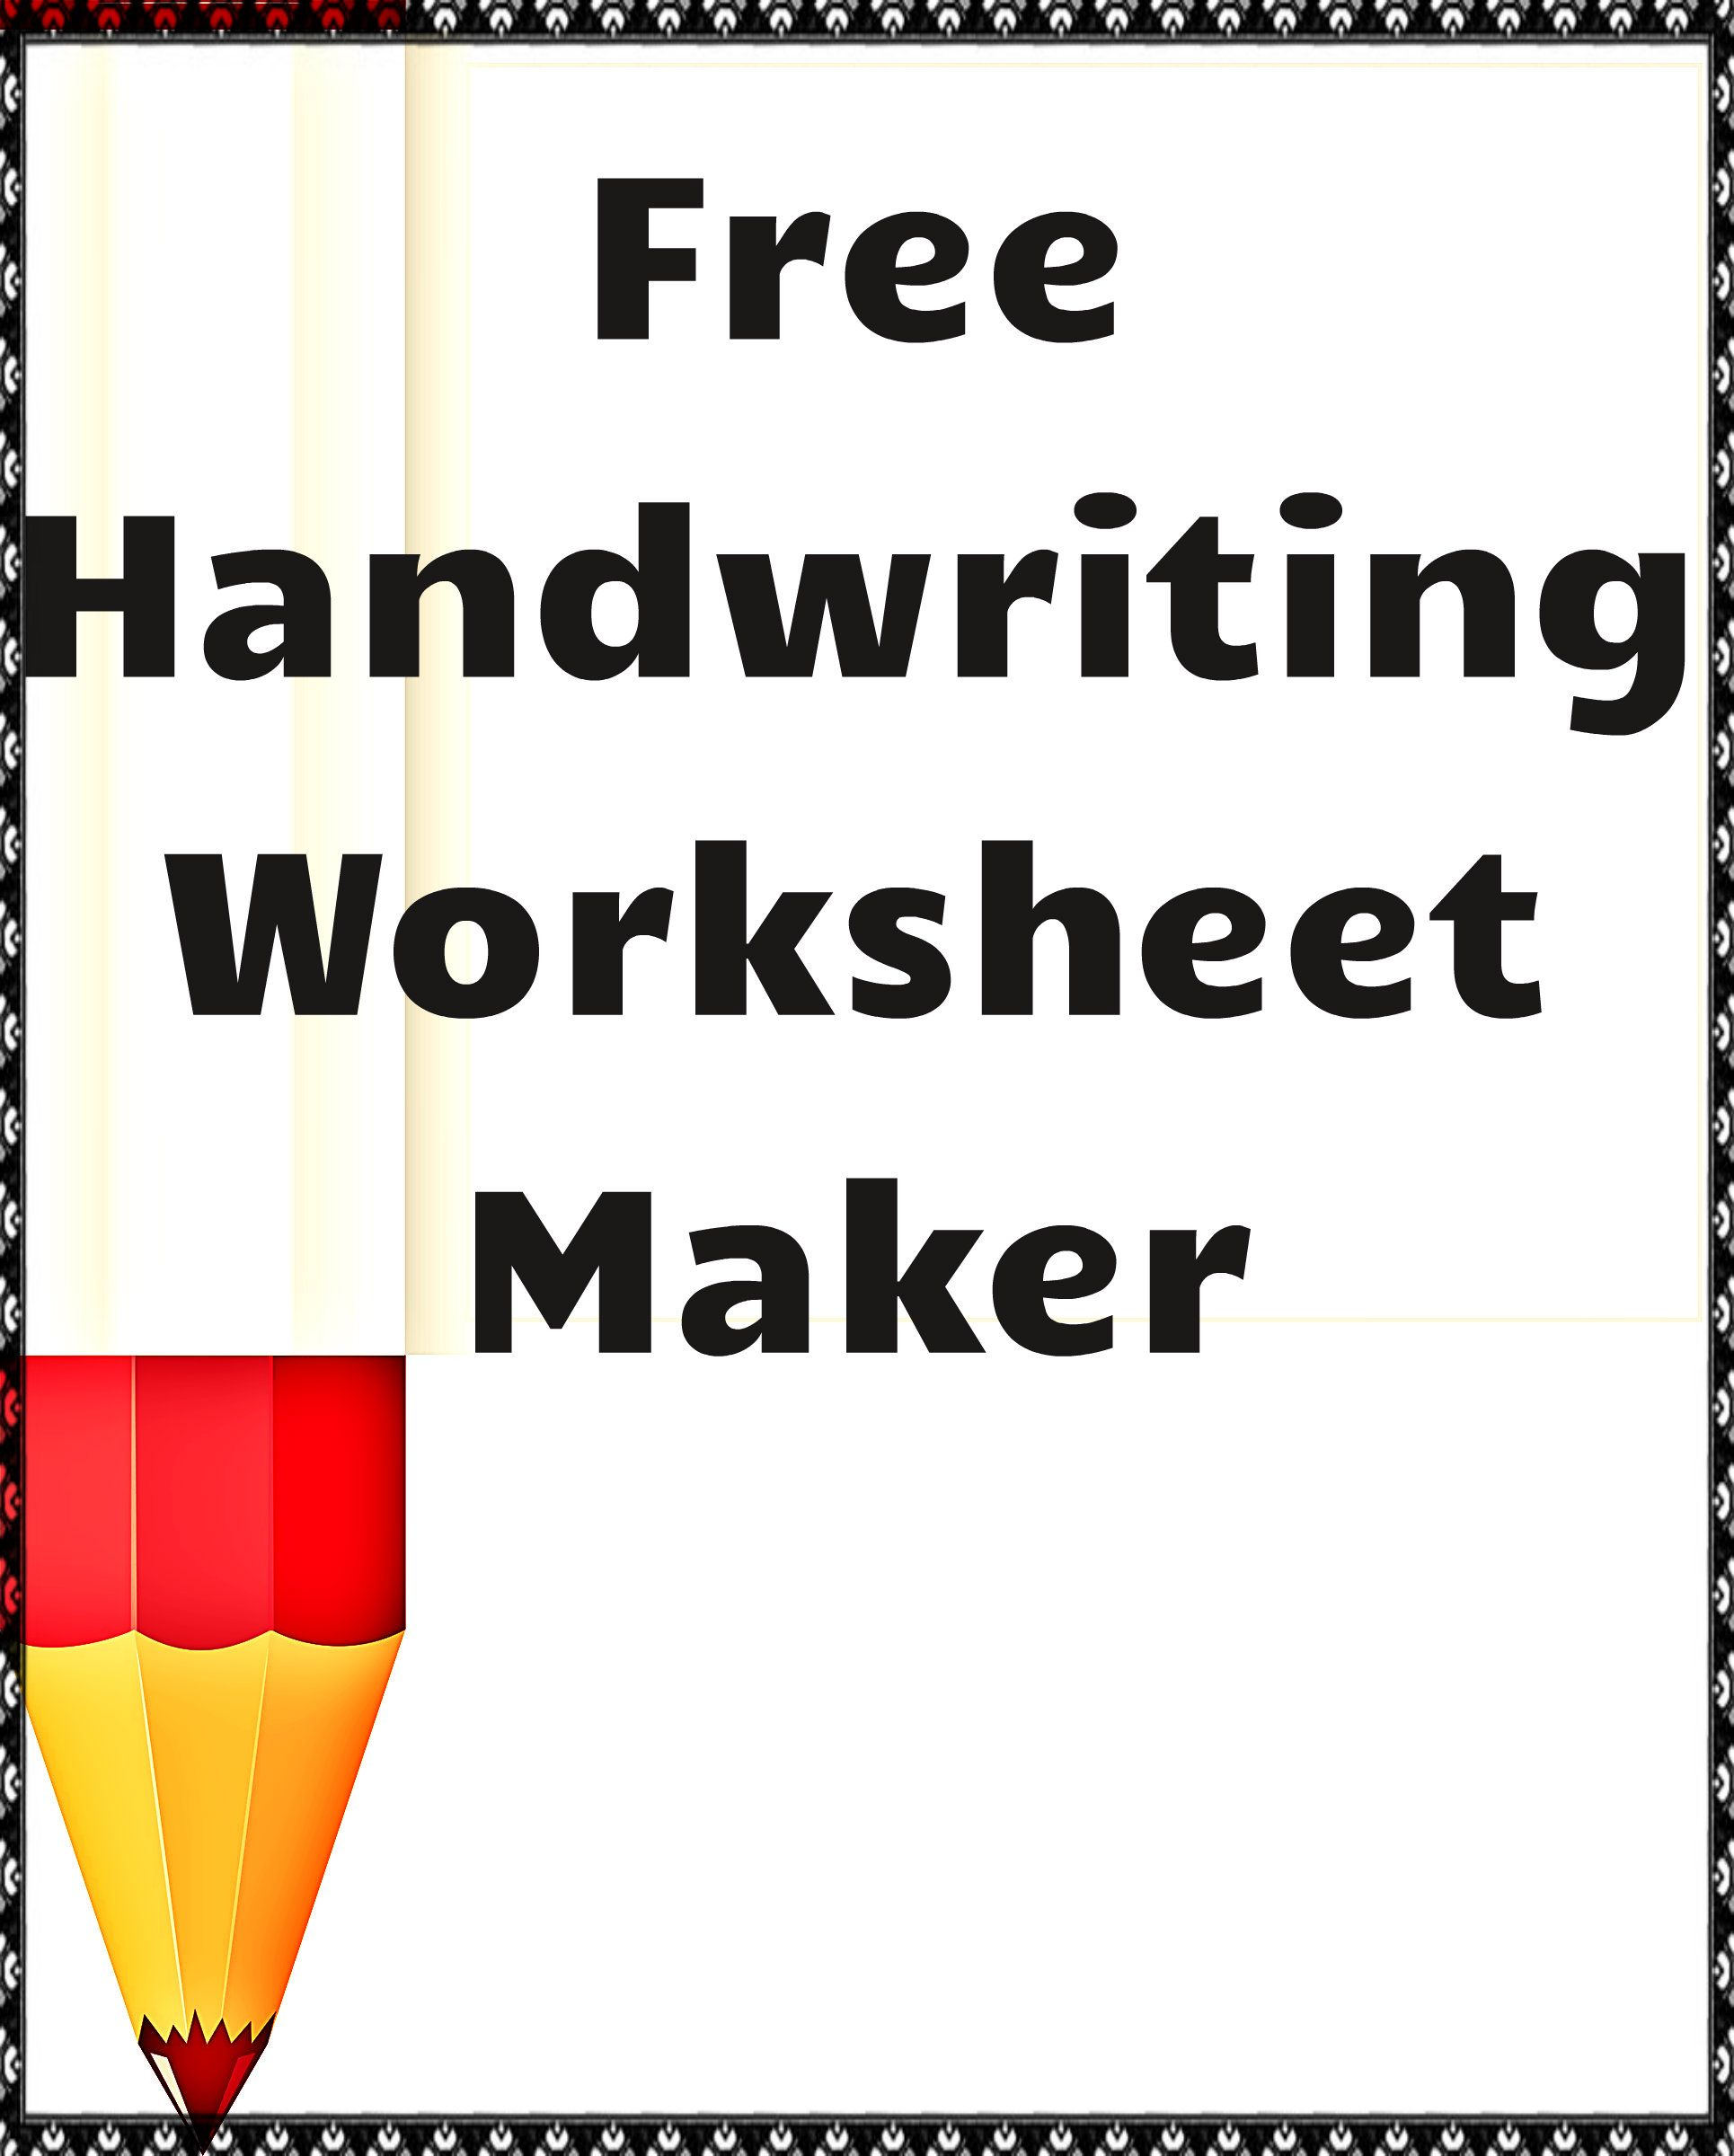 Make your own printable word shapes worksheets | A to Z Teacher ...